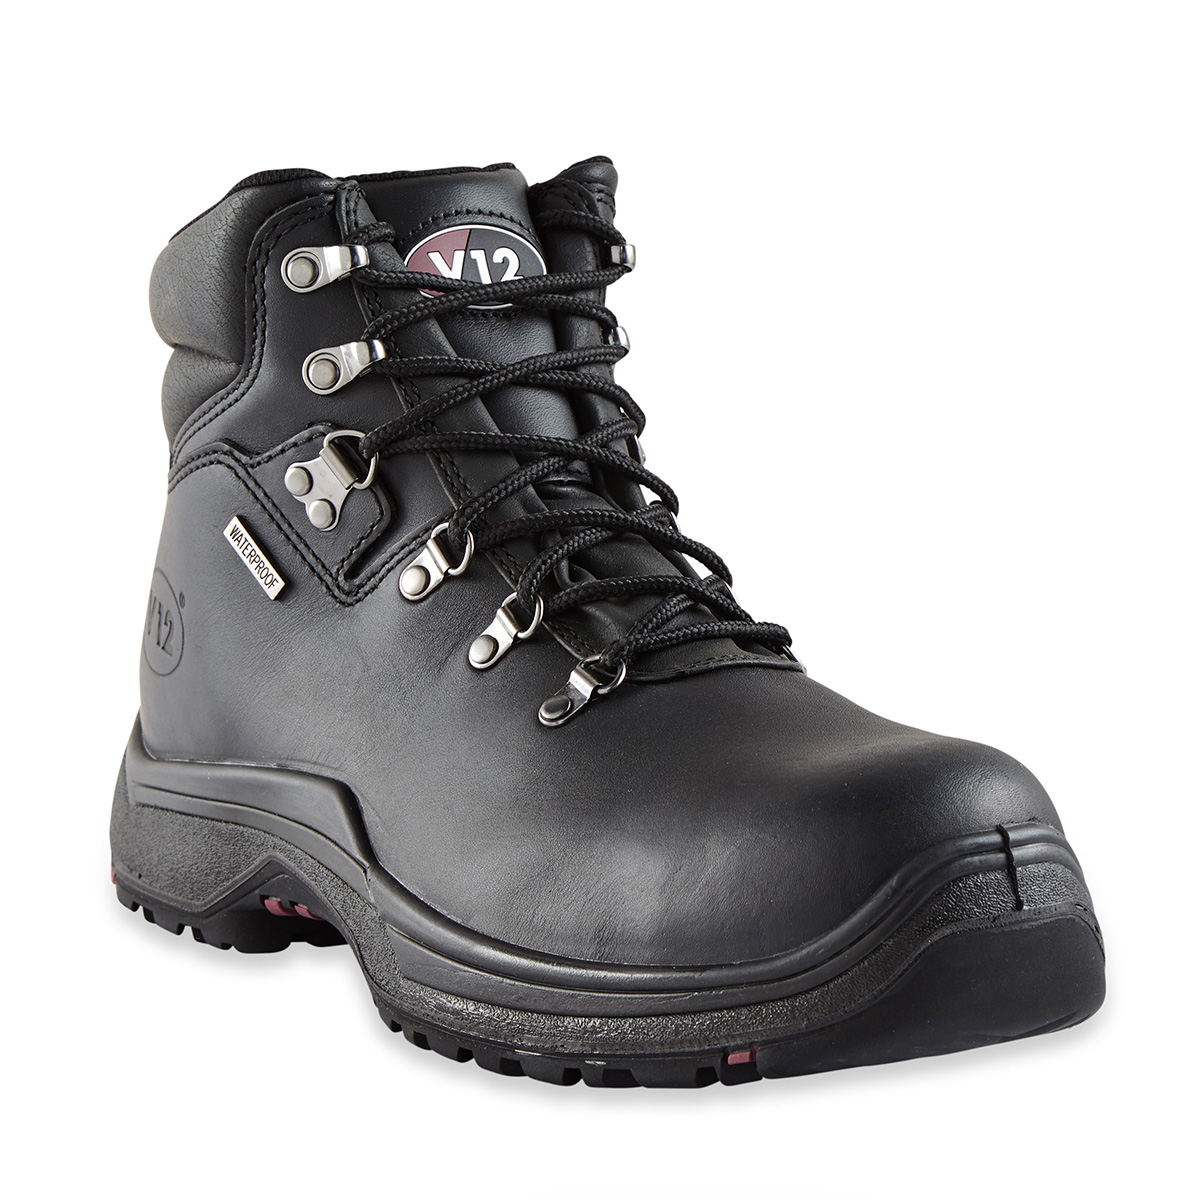 V12 Thunder Waterproof Hiker Boot